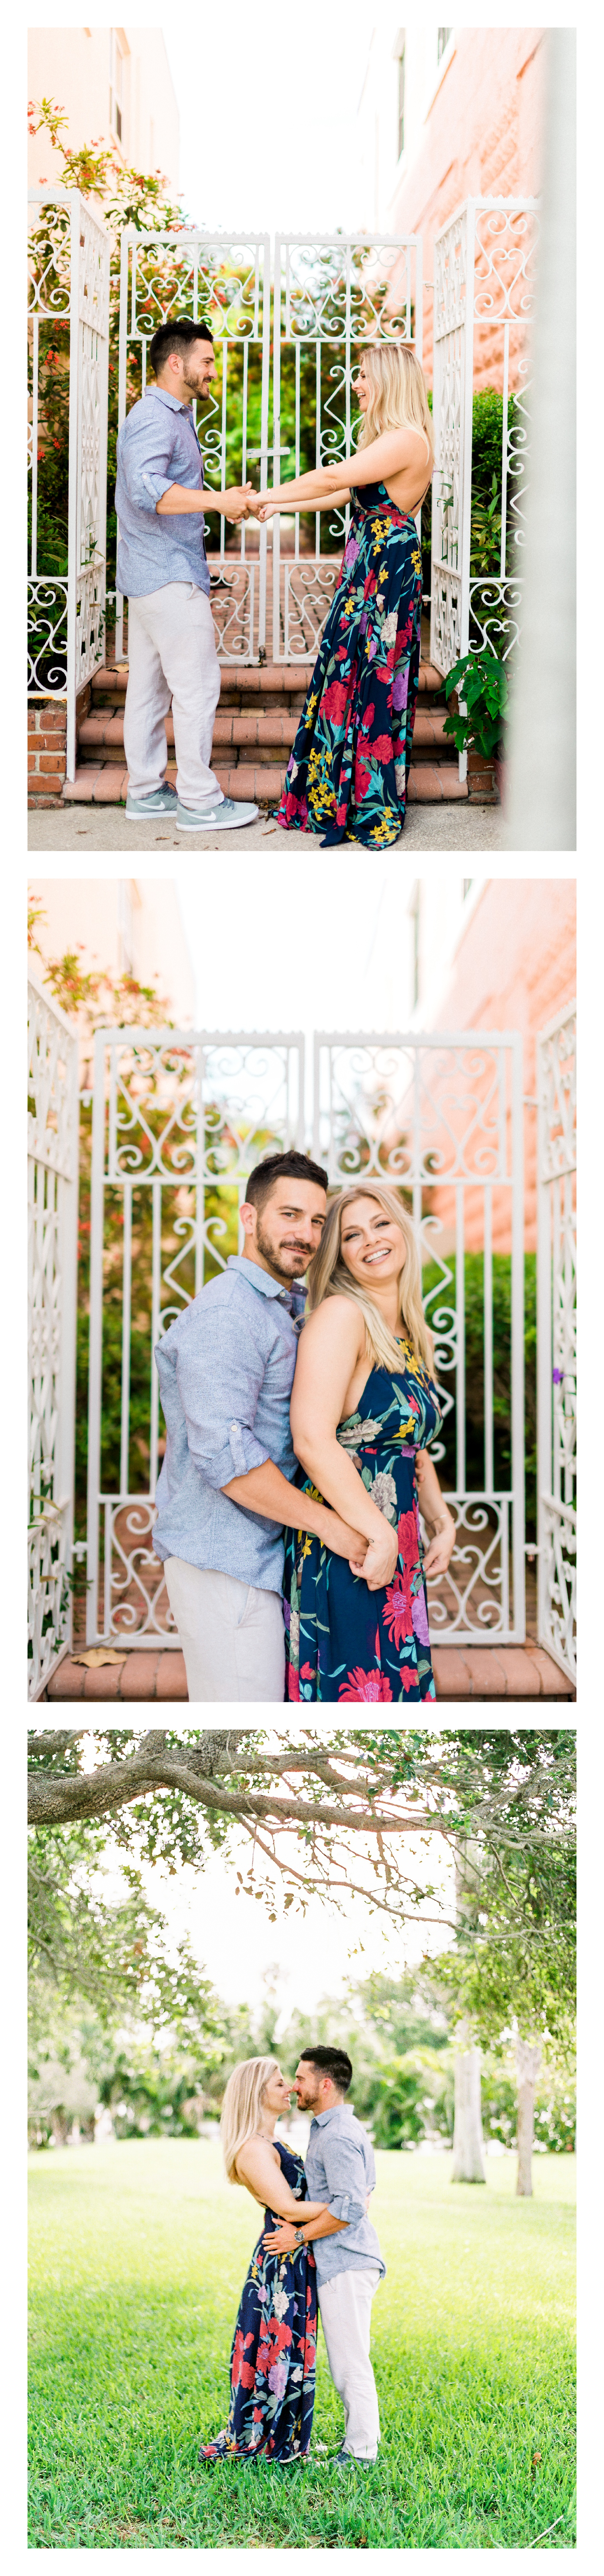 St. Petersburg Beach, tampa bay FL, Pass-a-Grille Engagement Photos